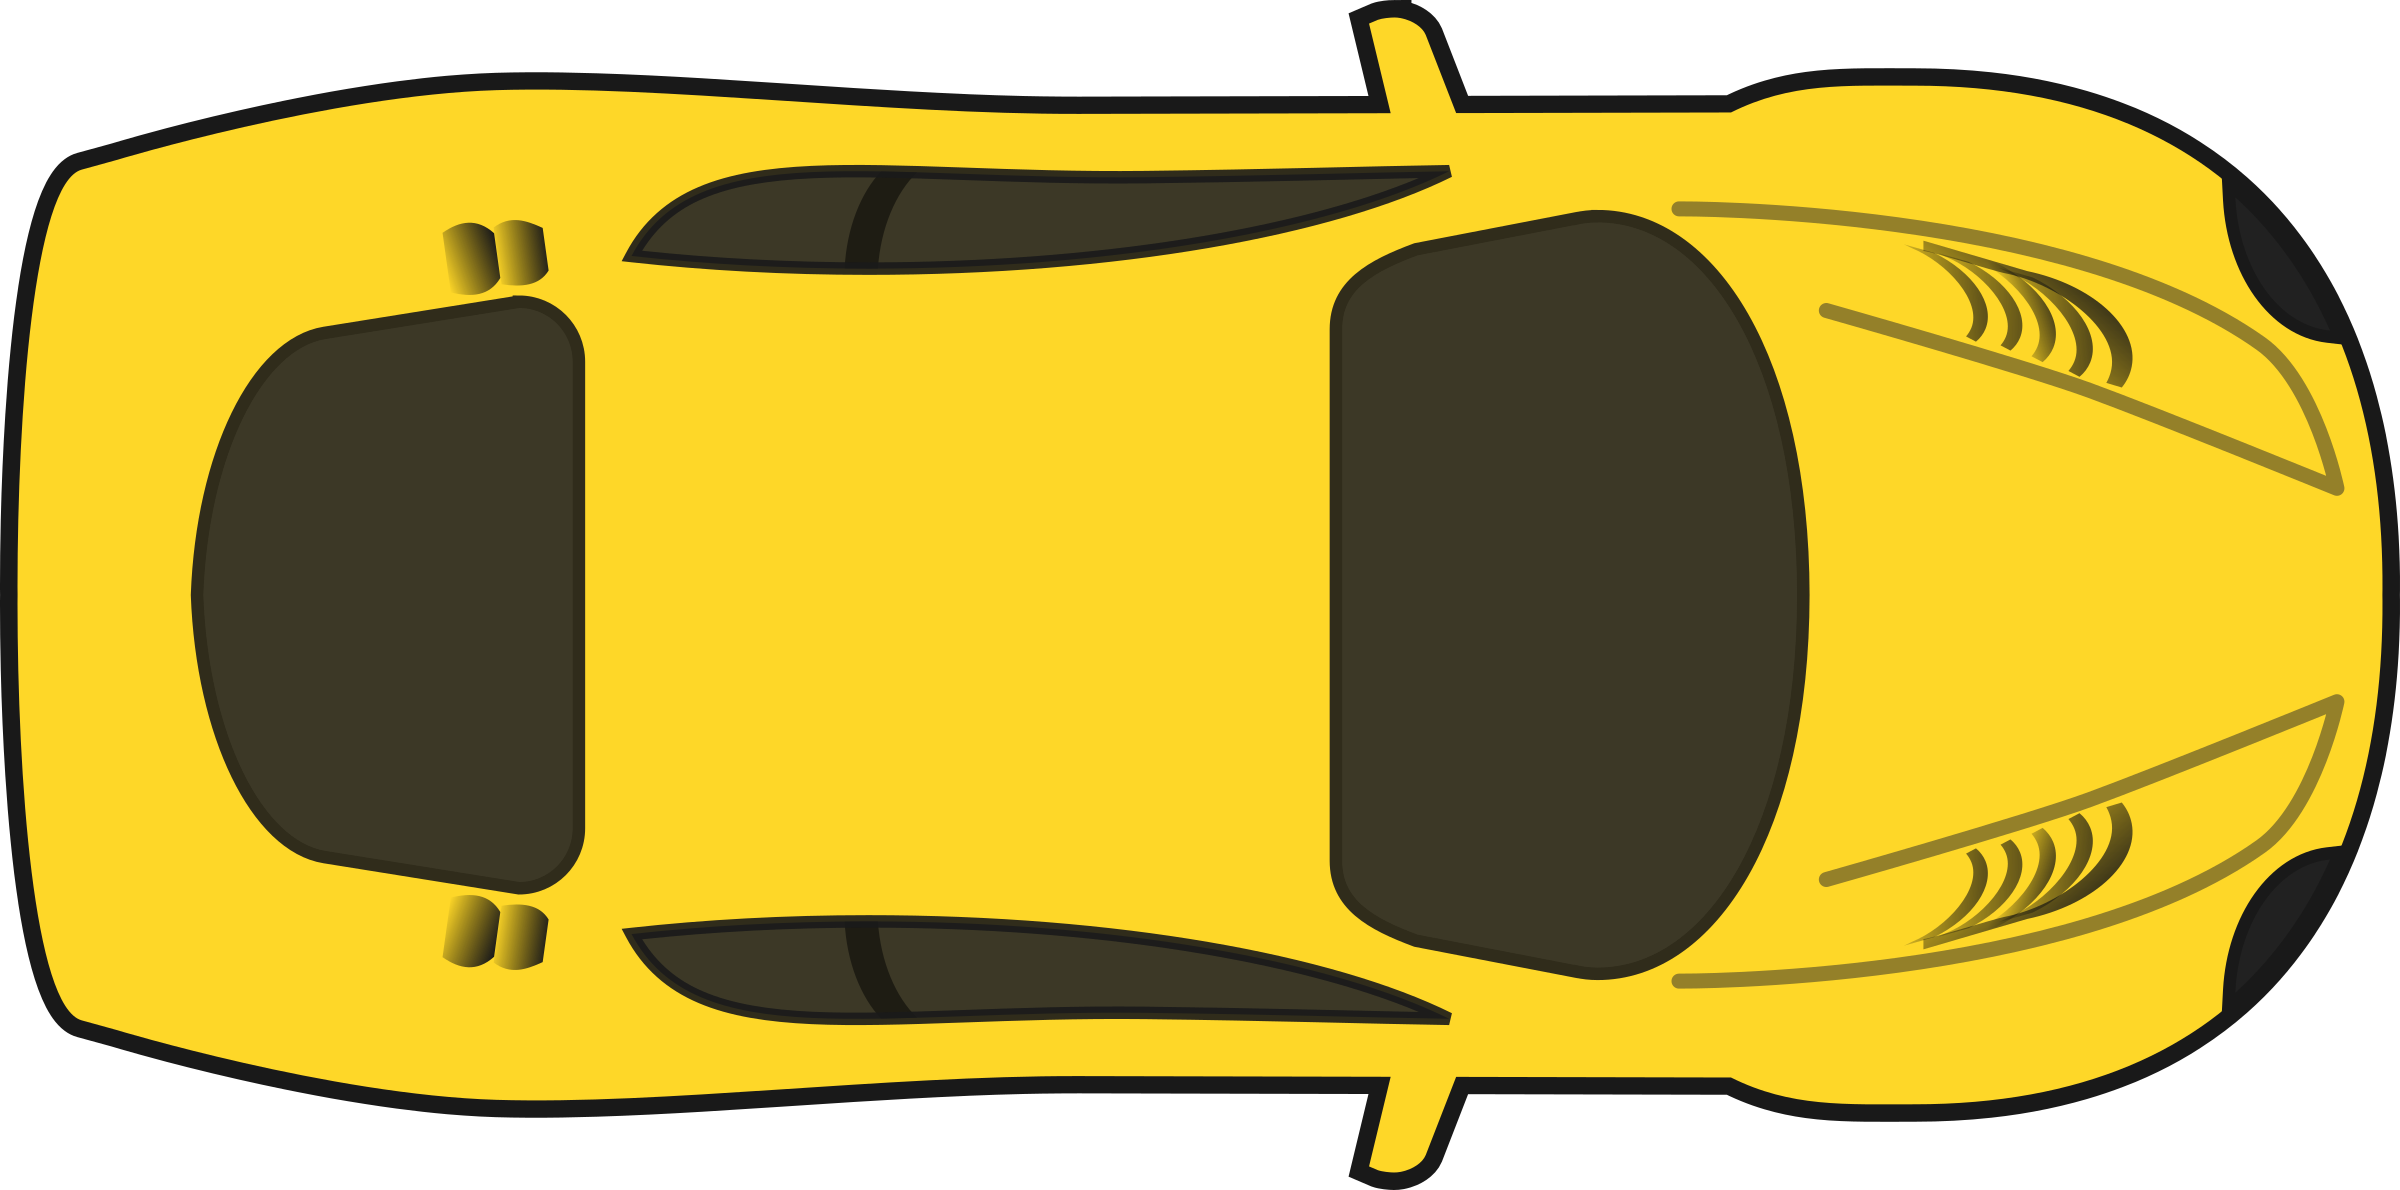 Simple clipart race car Car View) Racing Yellow Clipart